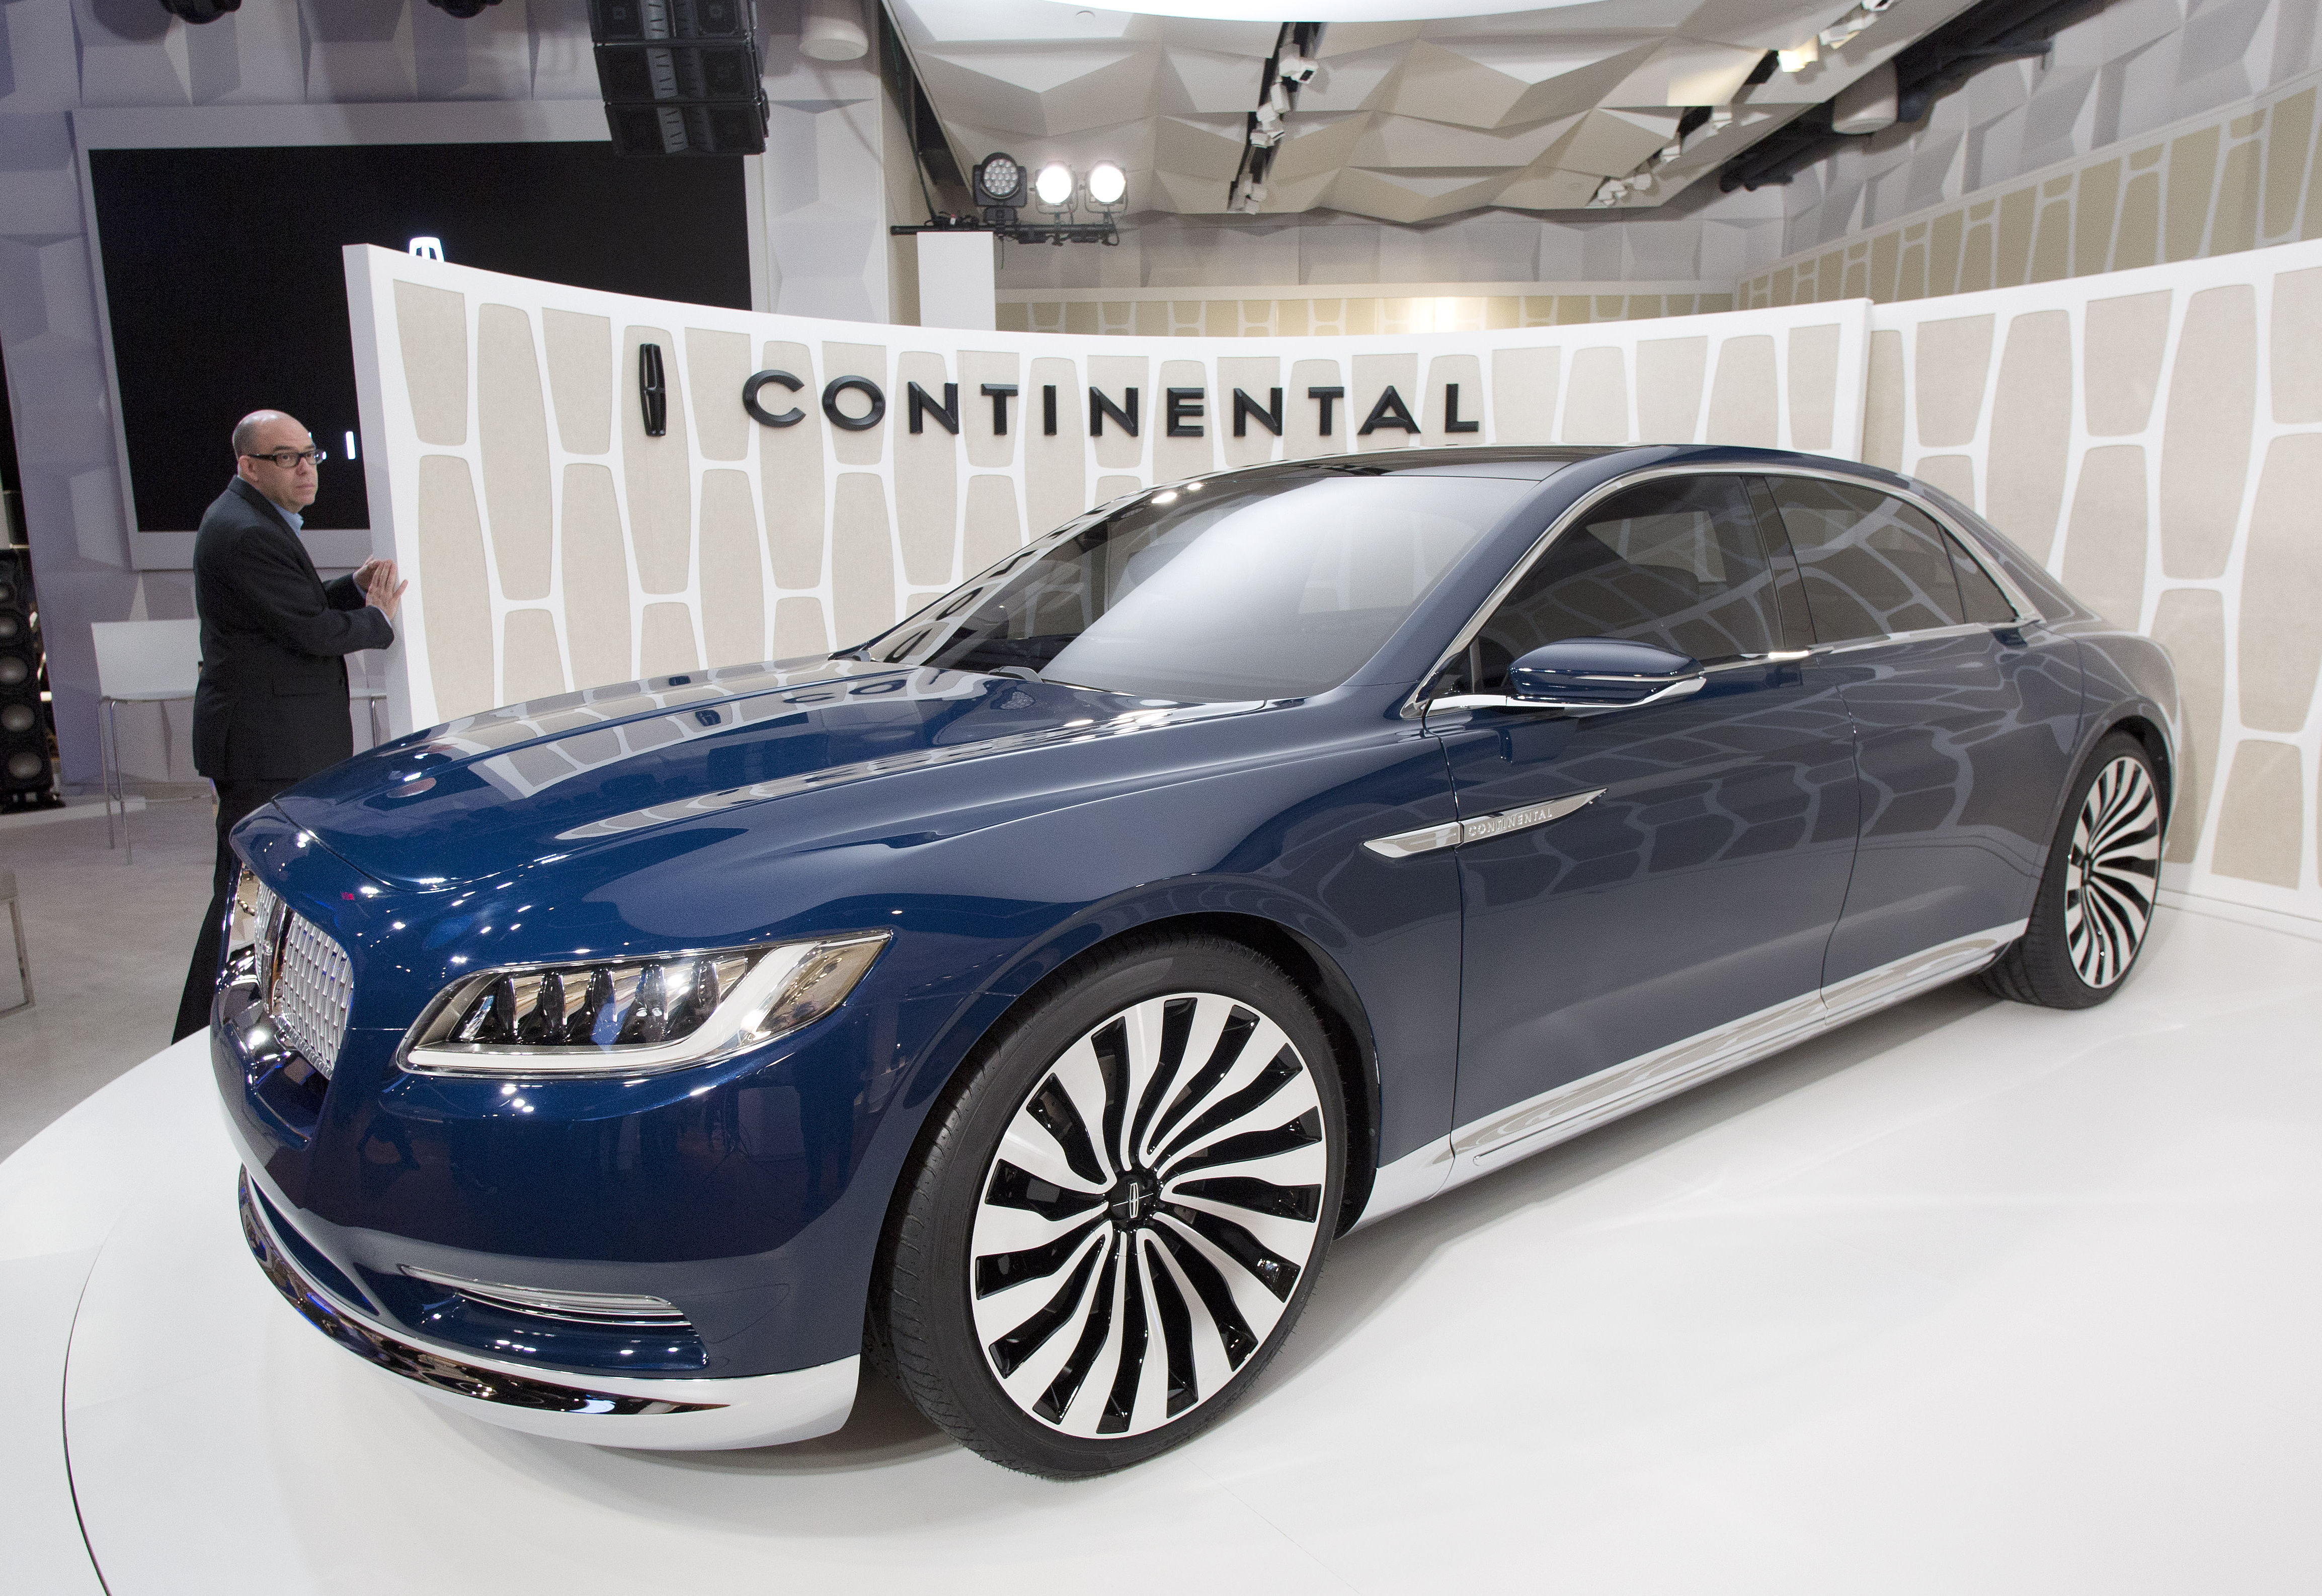 Auto_Show_Lincoln_Continental31 Outstanding Lincoln Continental New York Auto Show Cars Trend